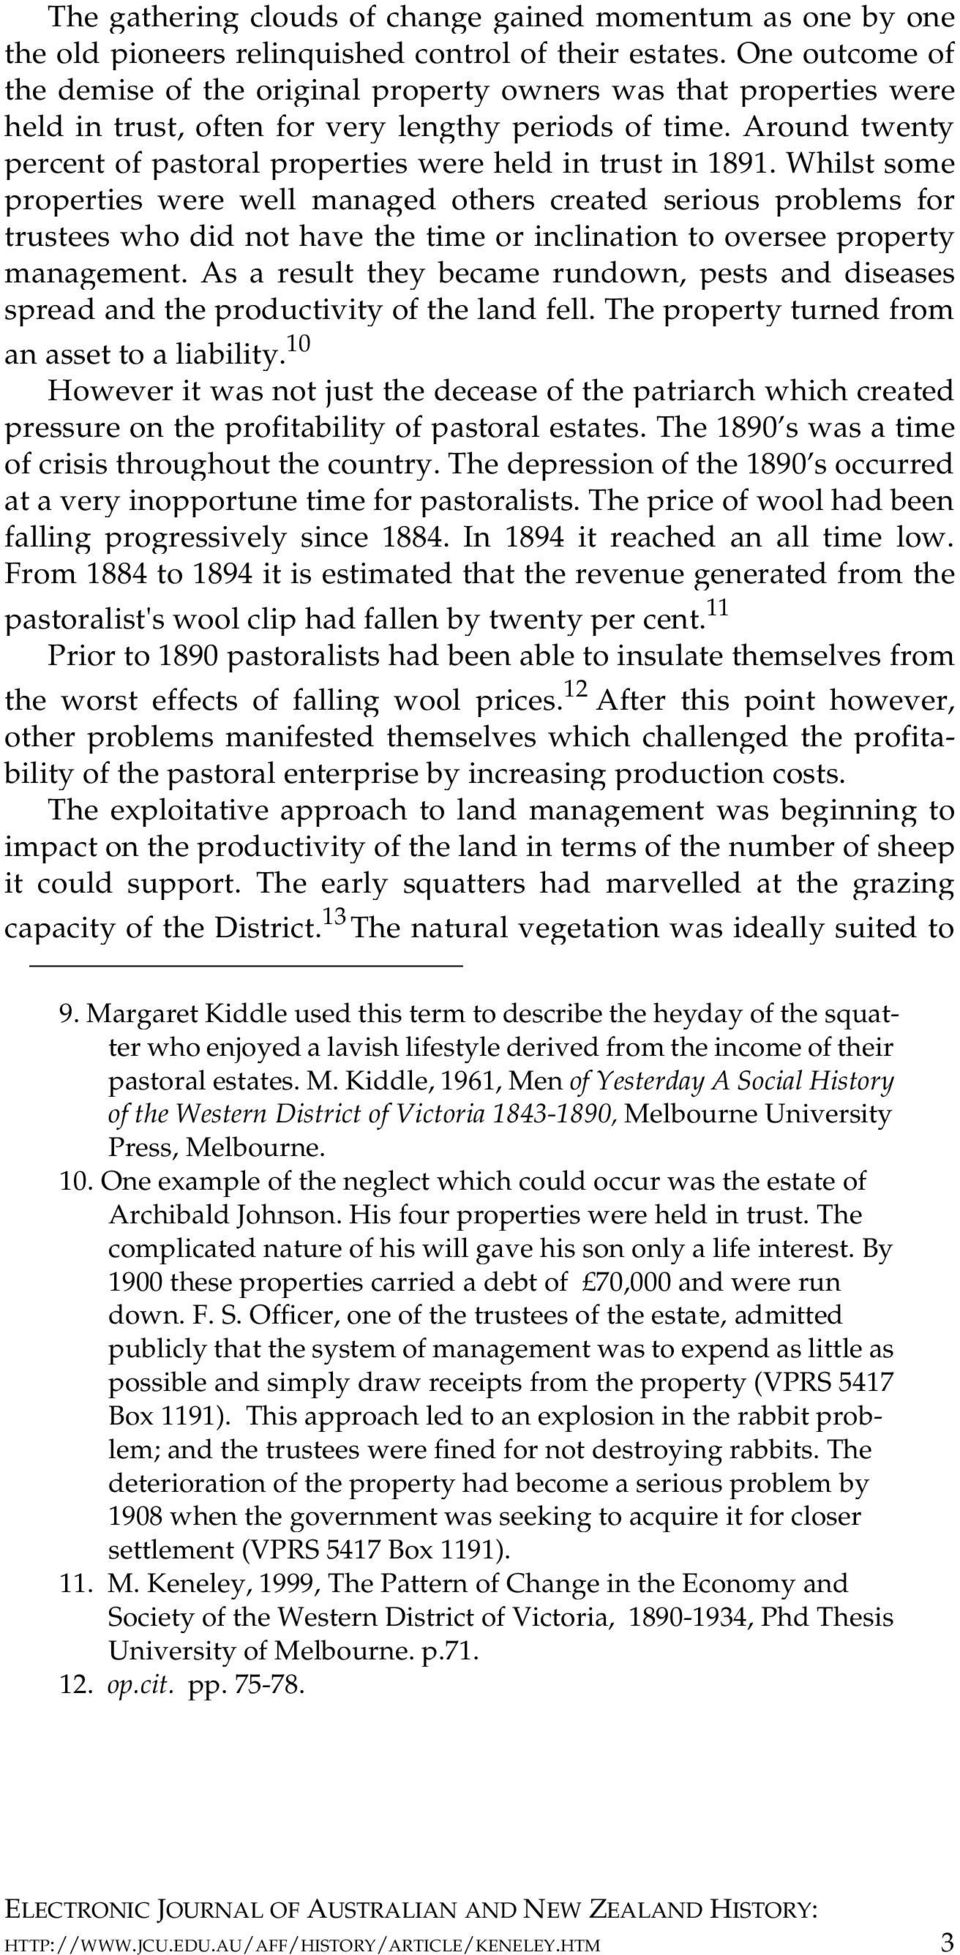 Around twenty percent of pastoral properties were held in trust in 1891.